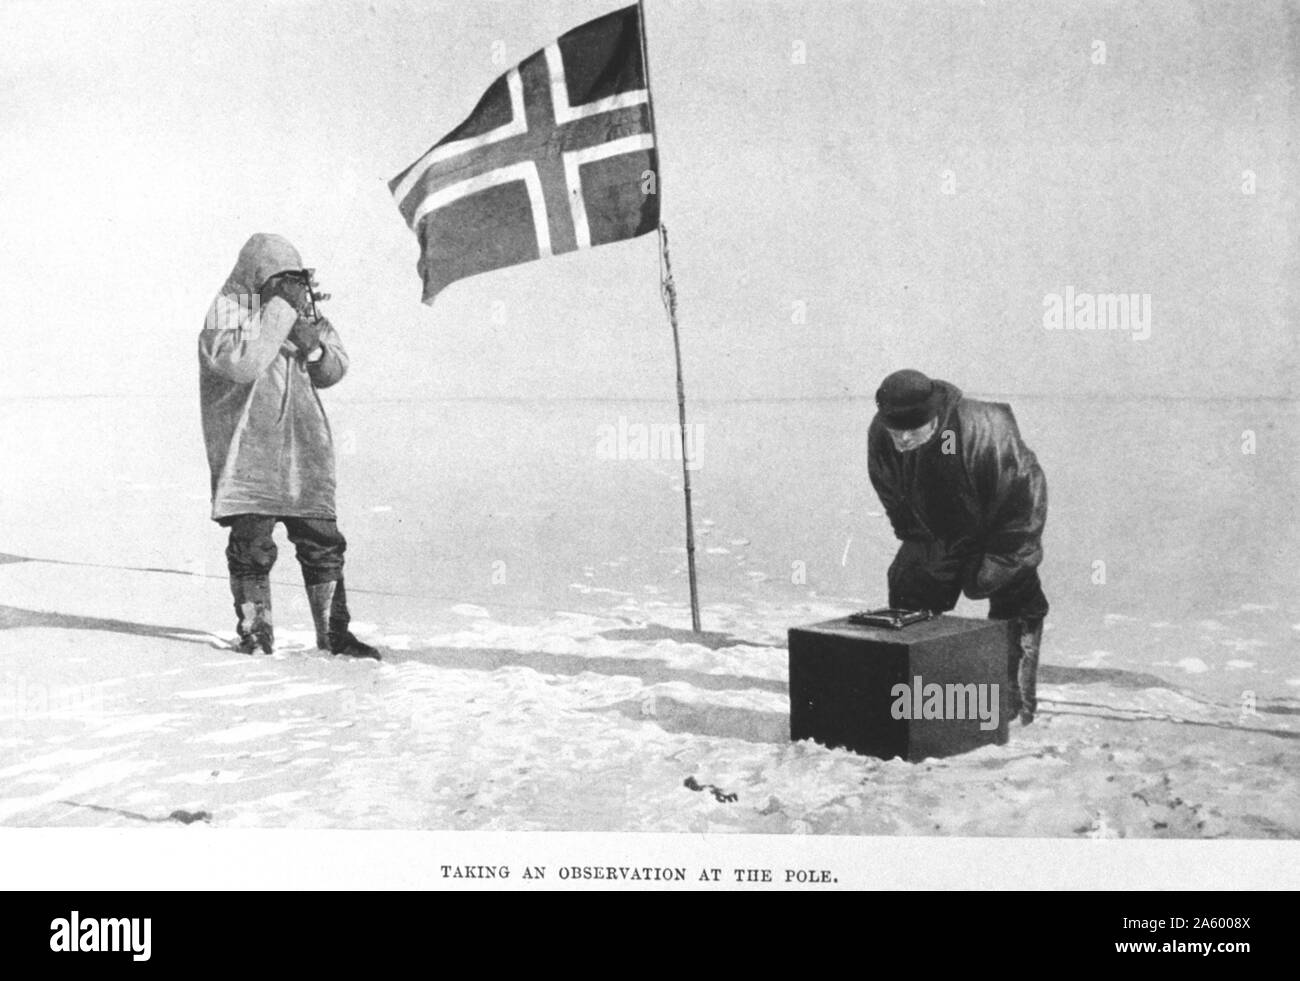 Taking an observation at the pole. In: 'The South Pole', by Roald Amundsen, 1872-1928 Stock Photo